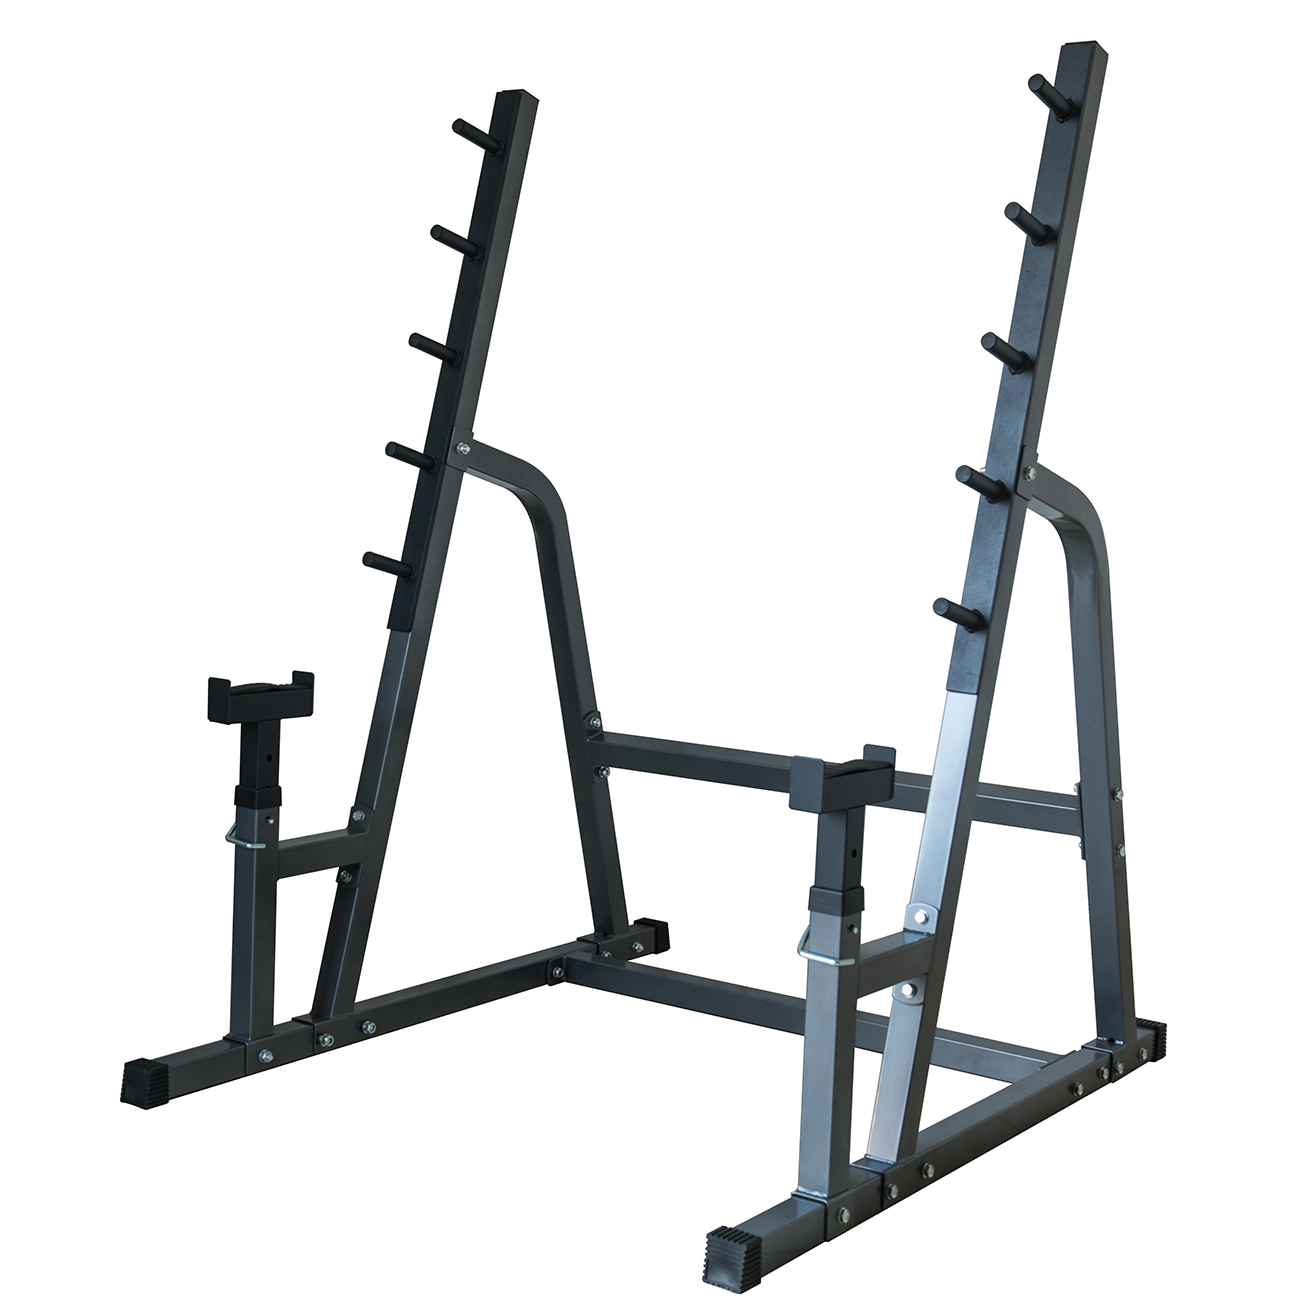 akonza deluxe squat bench combo rack fitness exercise equipment safety